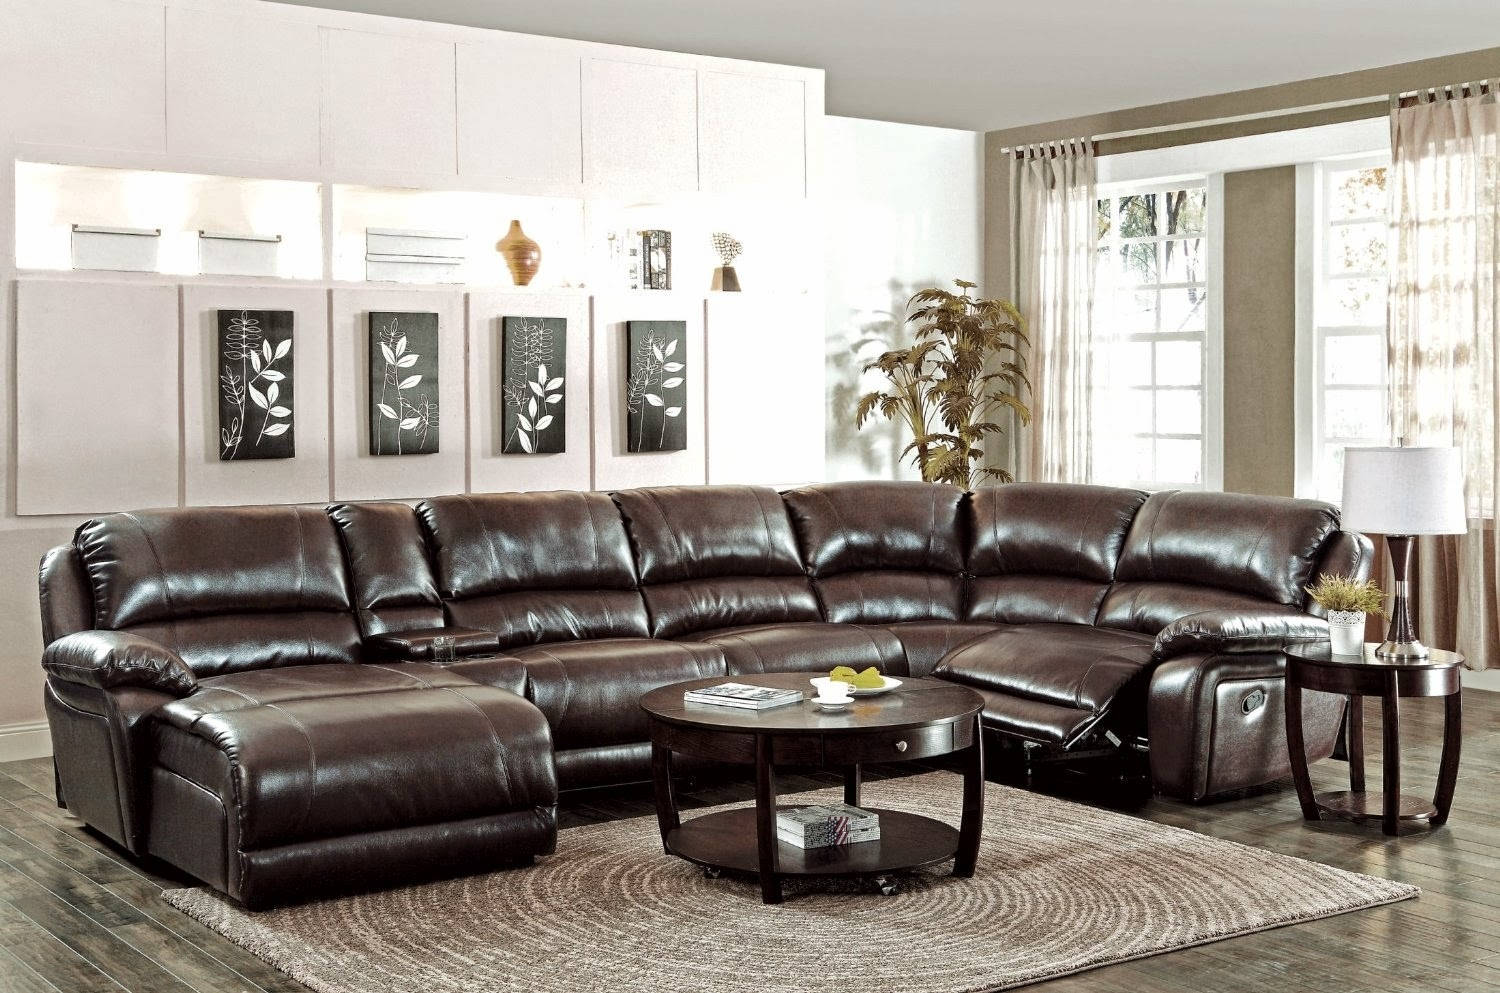 Modern Reclining Couches Reclining Leather Couches Pertaining To 6 Piece Leather Sectional Sofa (Image 7 of 15)